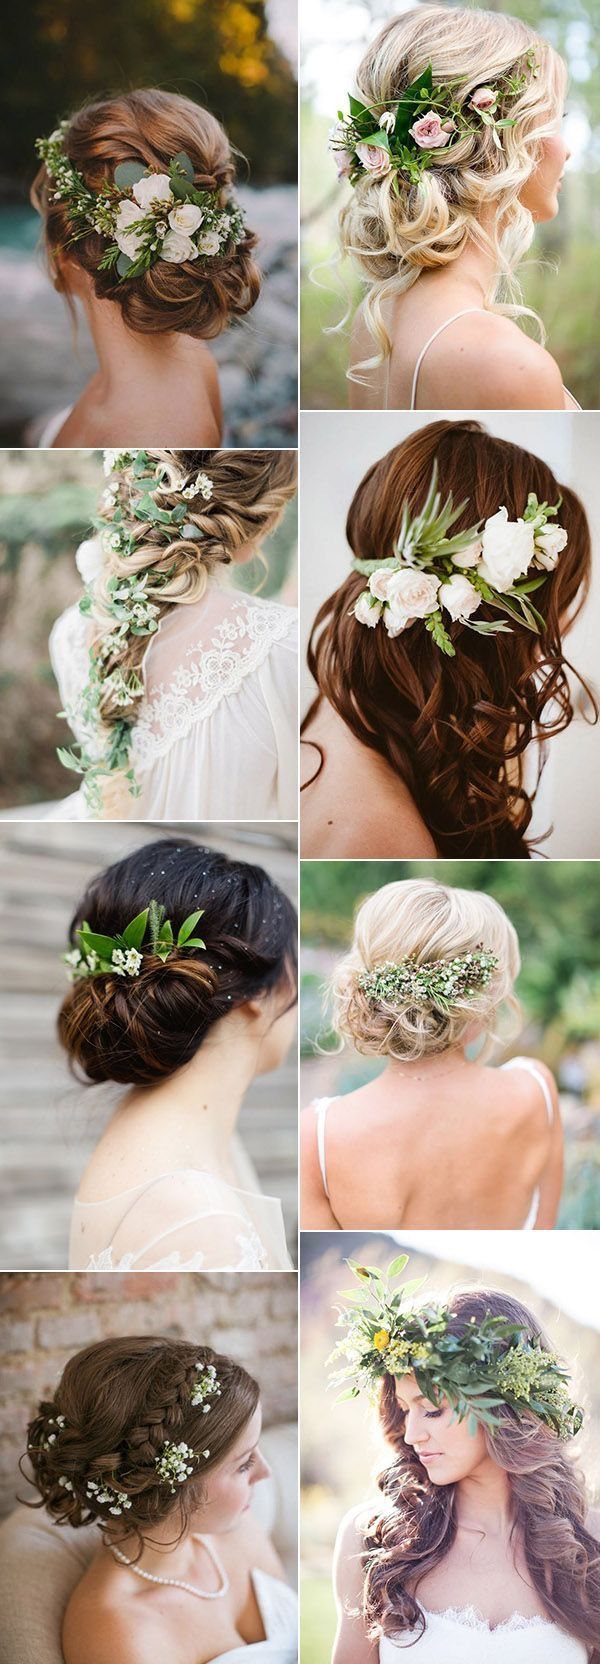 Pin by tiinamari murtovaara on wedding ideas pinterest wedding